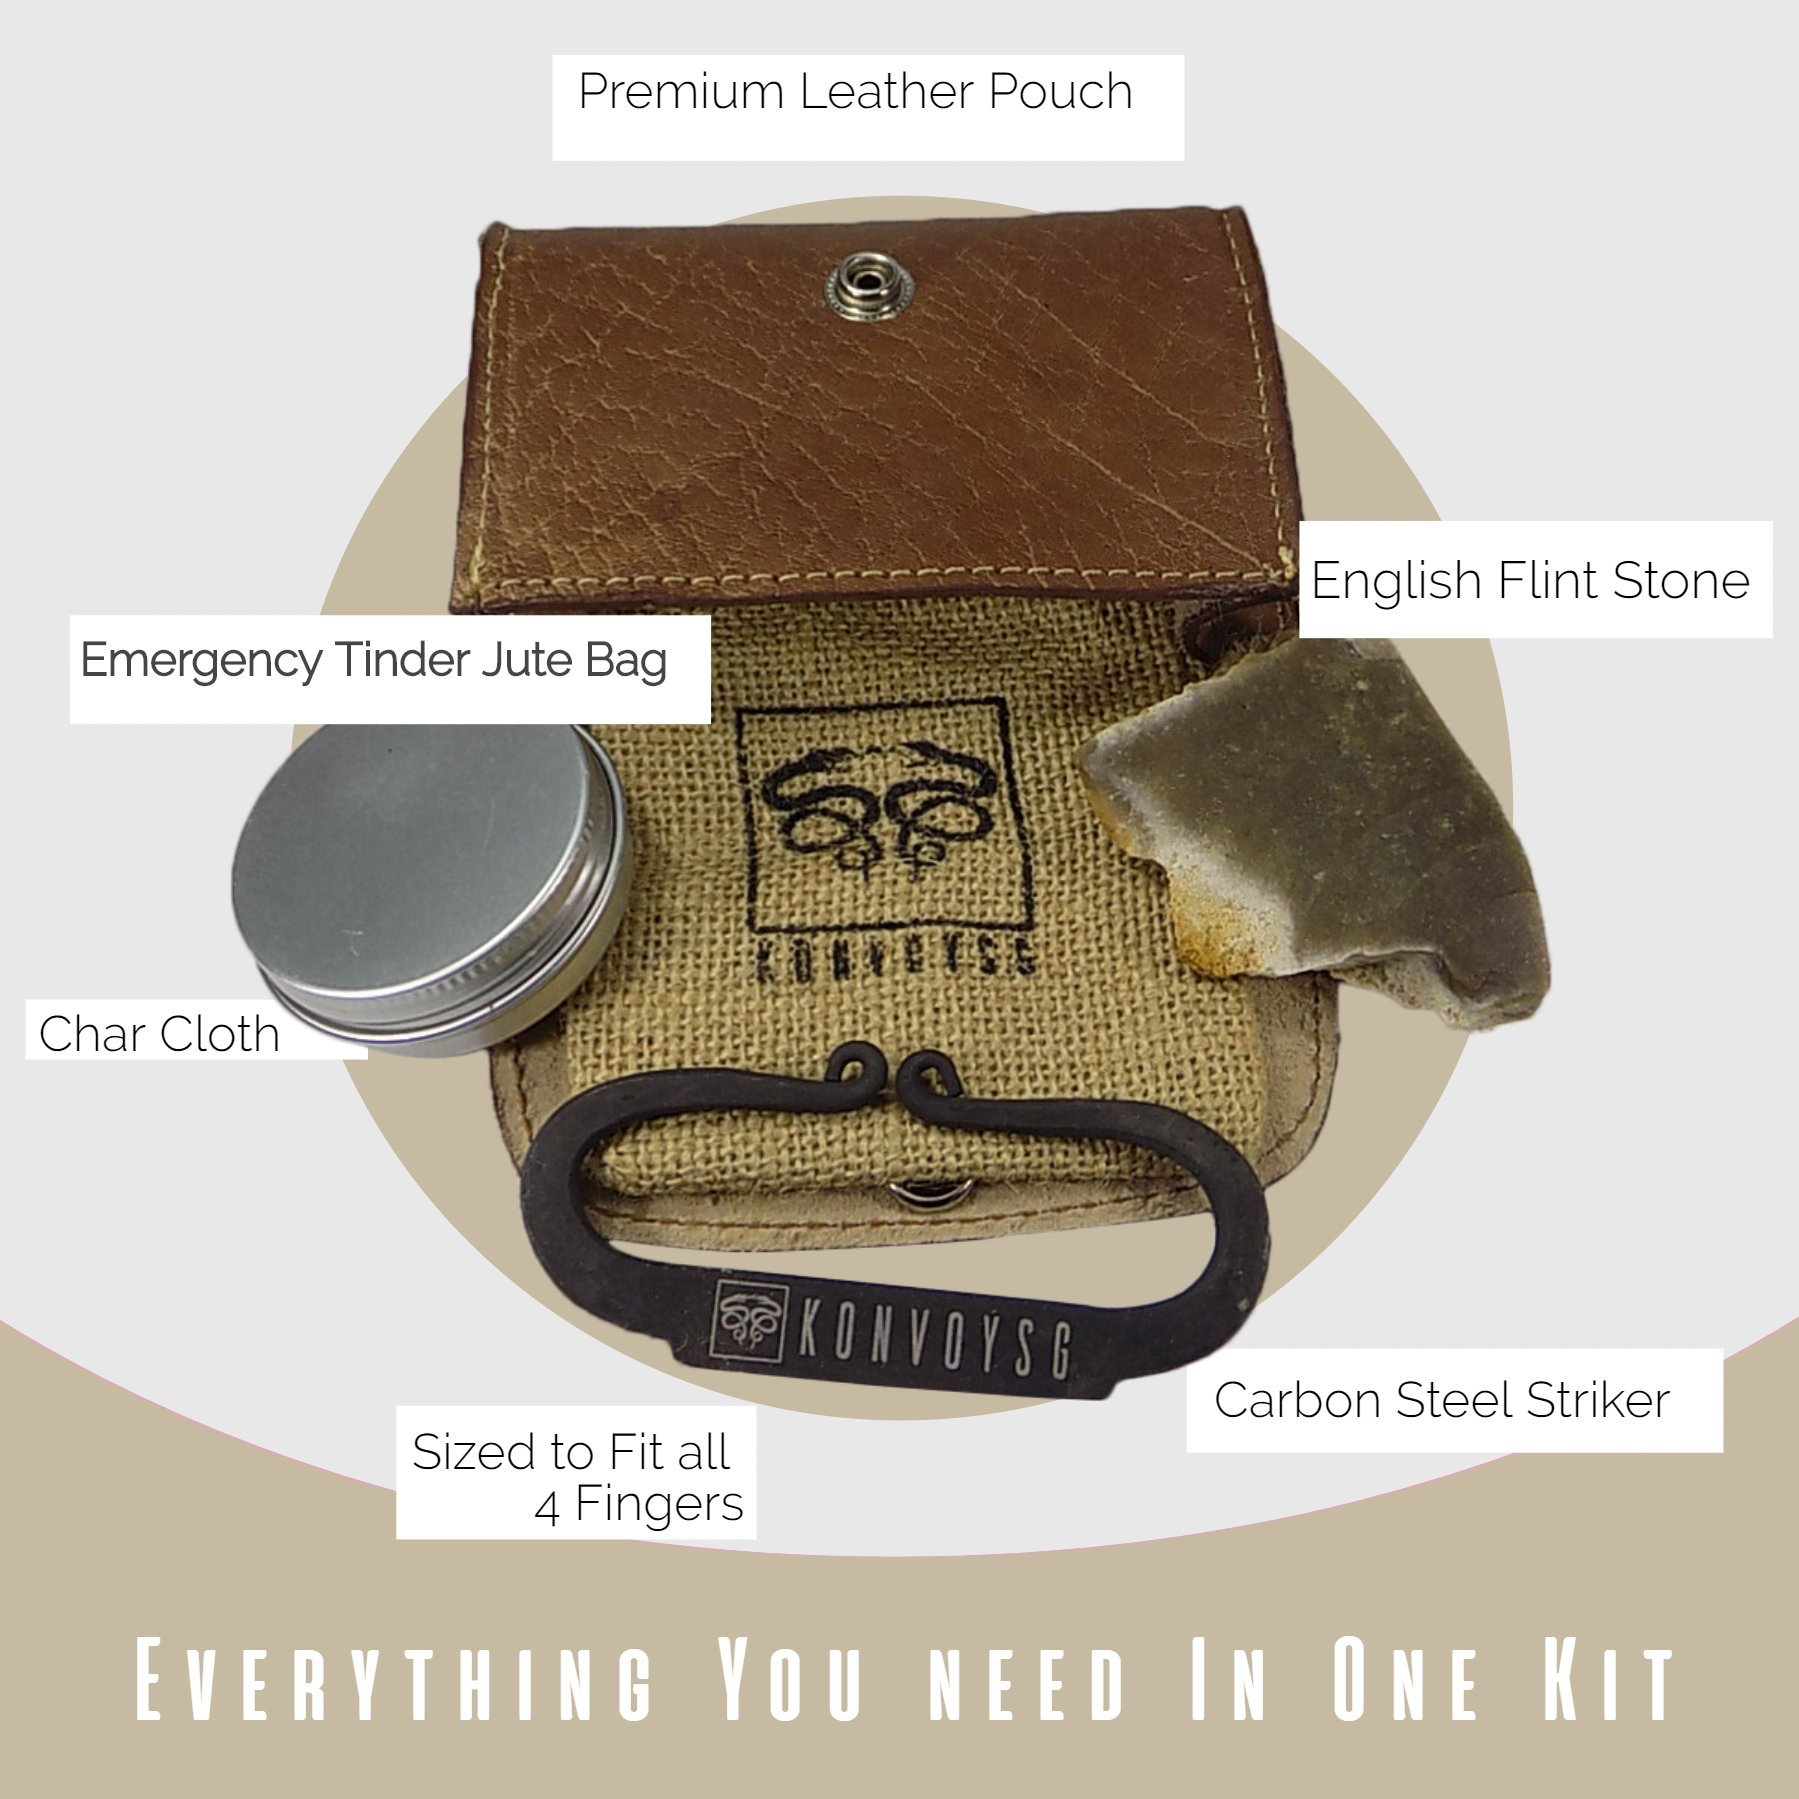 KonvoySG Flint and Steel Kit. Fire Striker, English Flint Stone & Char Cloth Traditional Hand Forged Fire Starter with a Leather Gift Pouch and Emergency Tinder Jute Bag (Coyote Brown) by KonvoySG (Image #6)